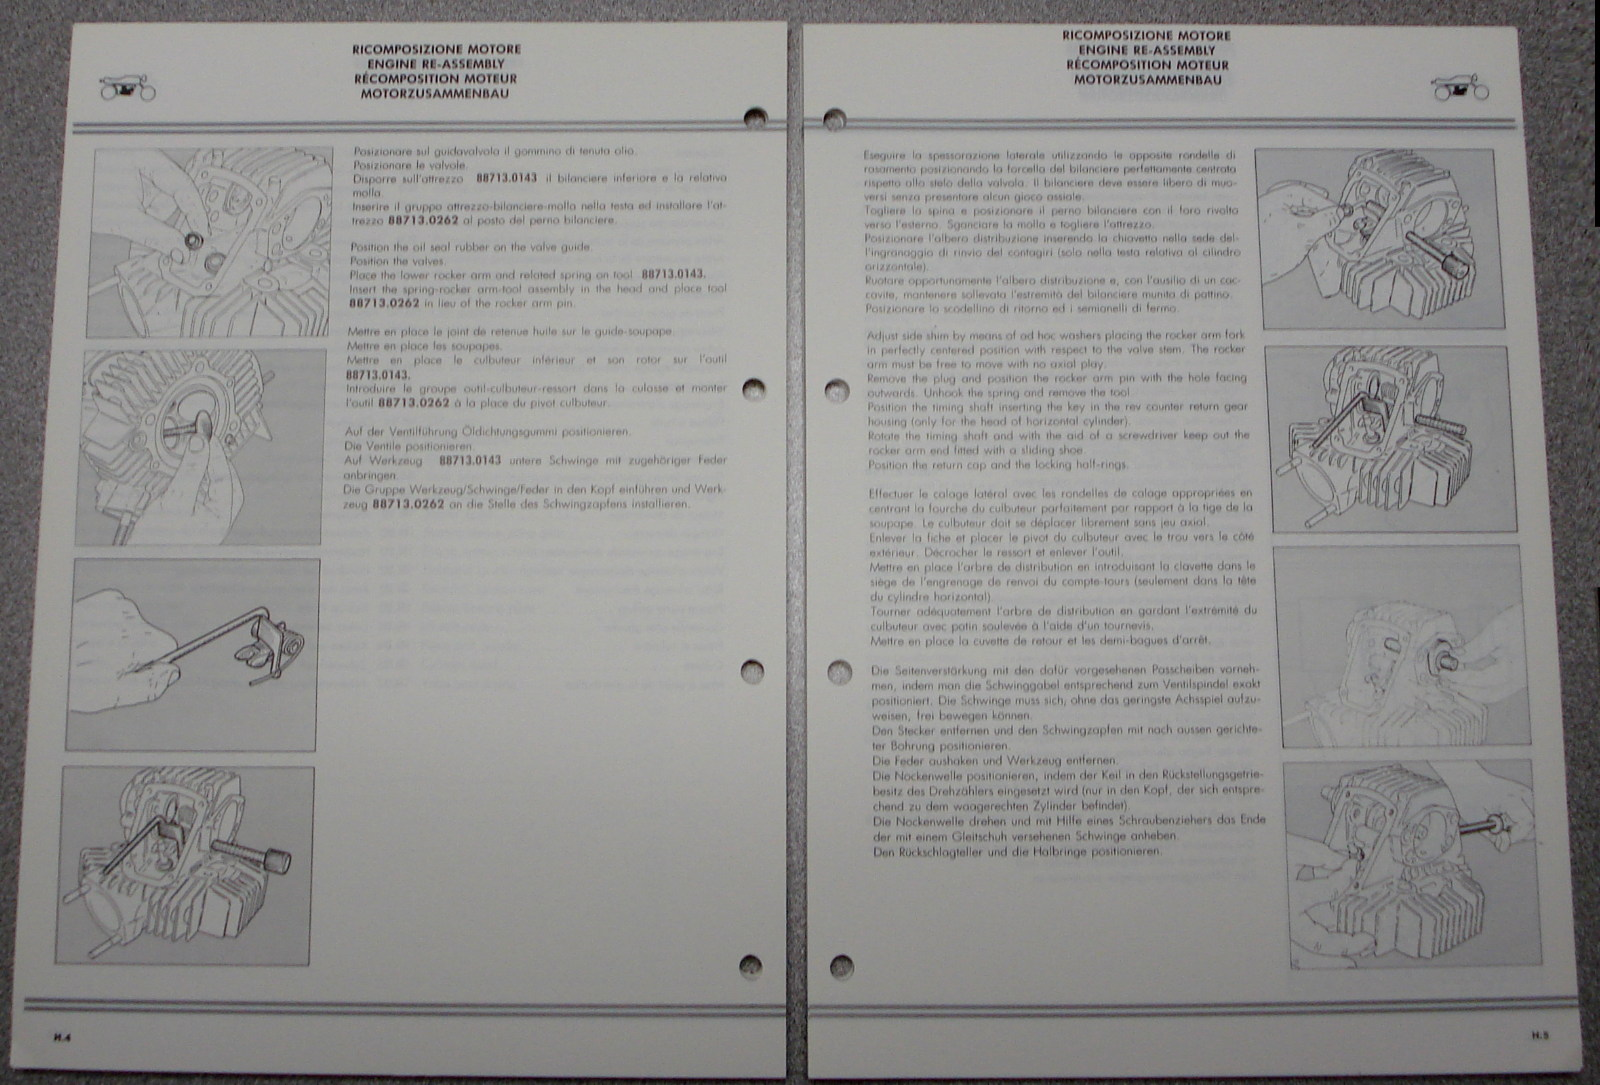 New OEM Ducati 750 Sport Factory Workshop Manual Maintenance Manual/with  wiring digaram. 4 Languages: Italian, English, French, German. Ducati Part  ...